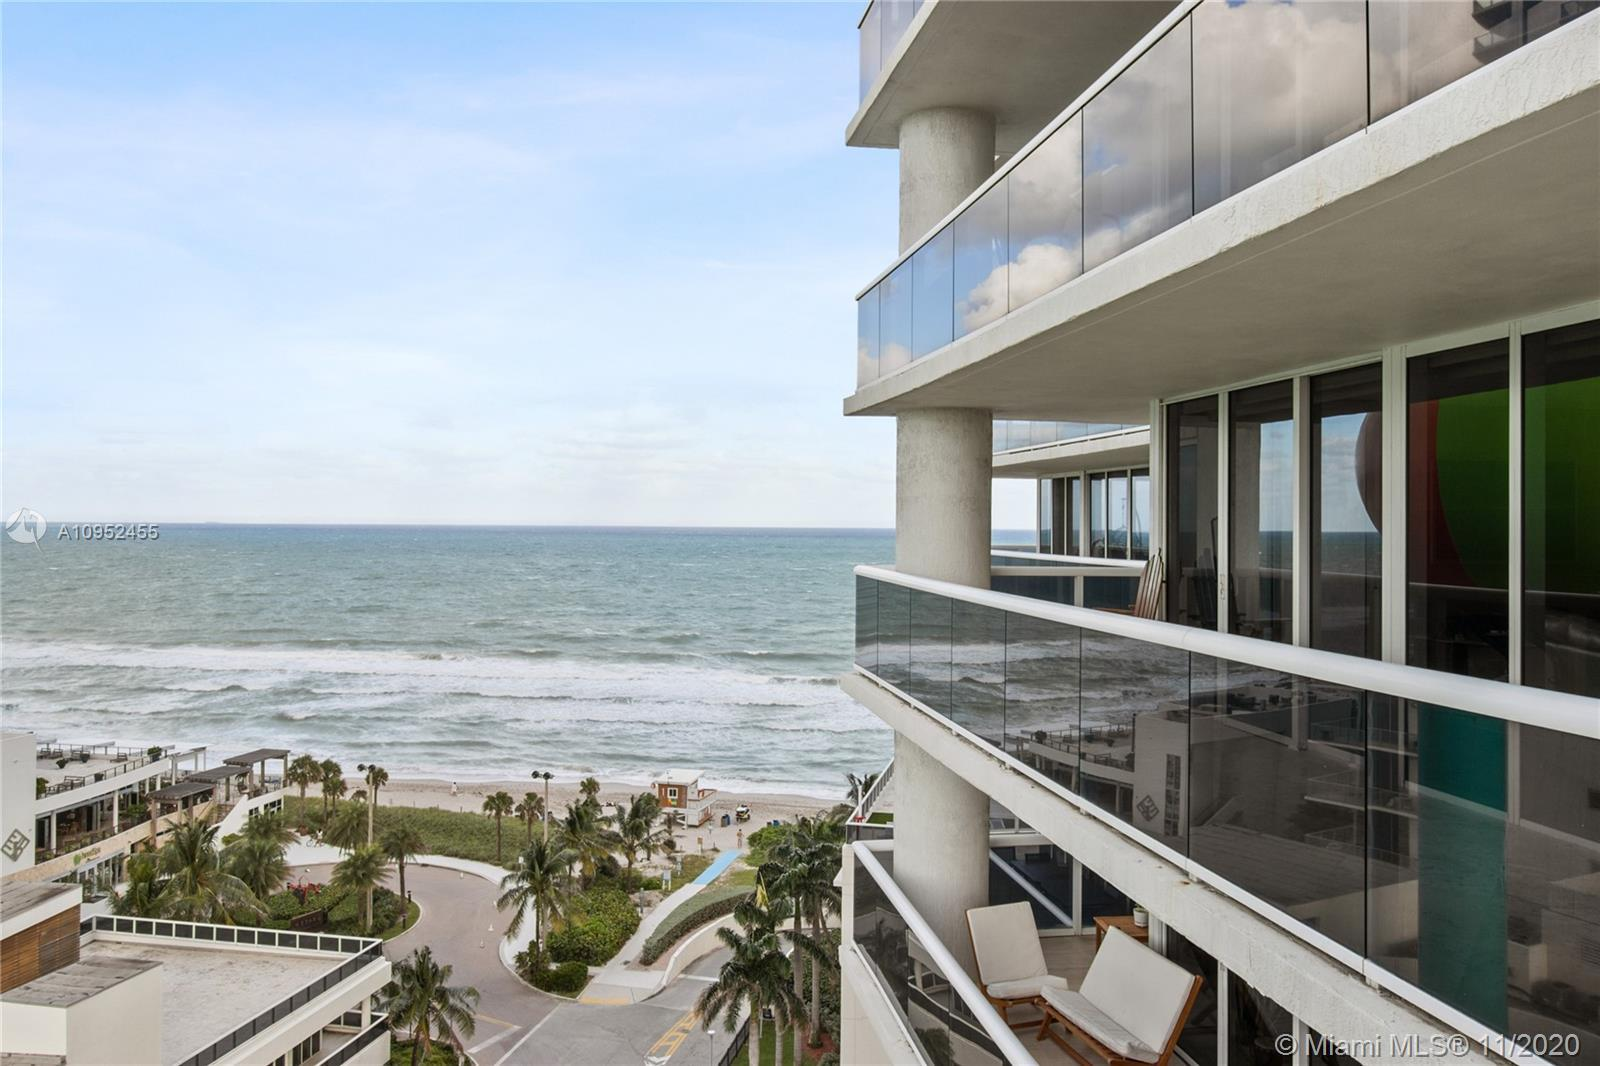 LUXURY Beach Condominium. Fully furnished Large and Bright 2 bed room and 2 full bath corner apartme